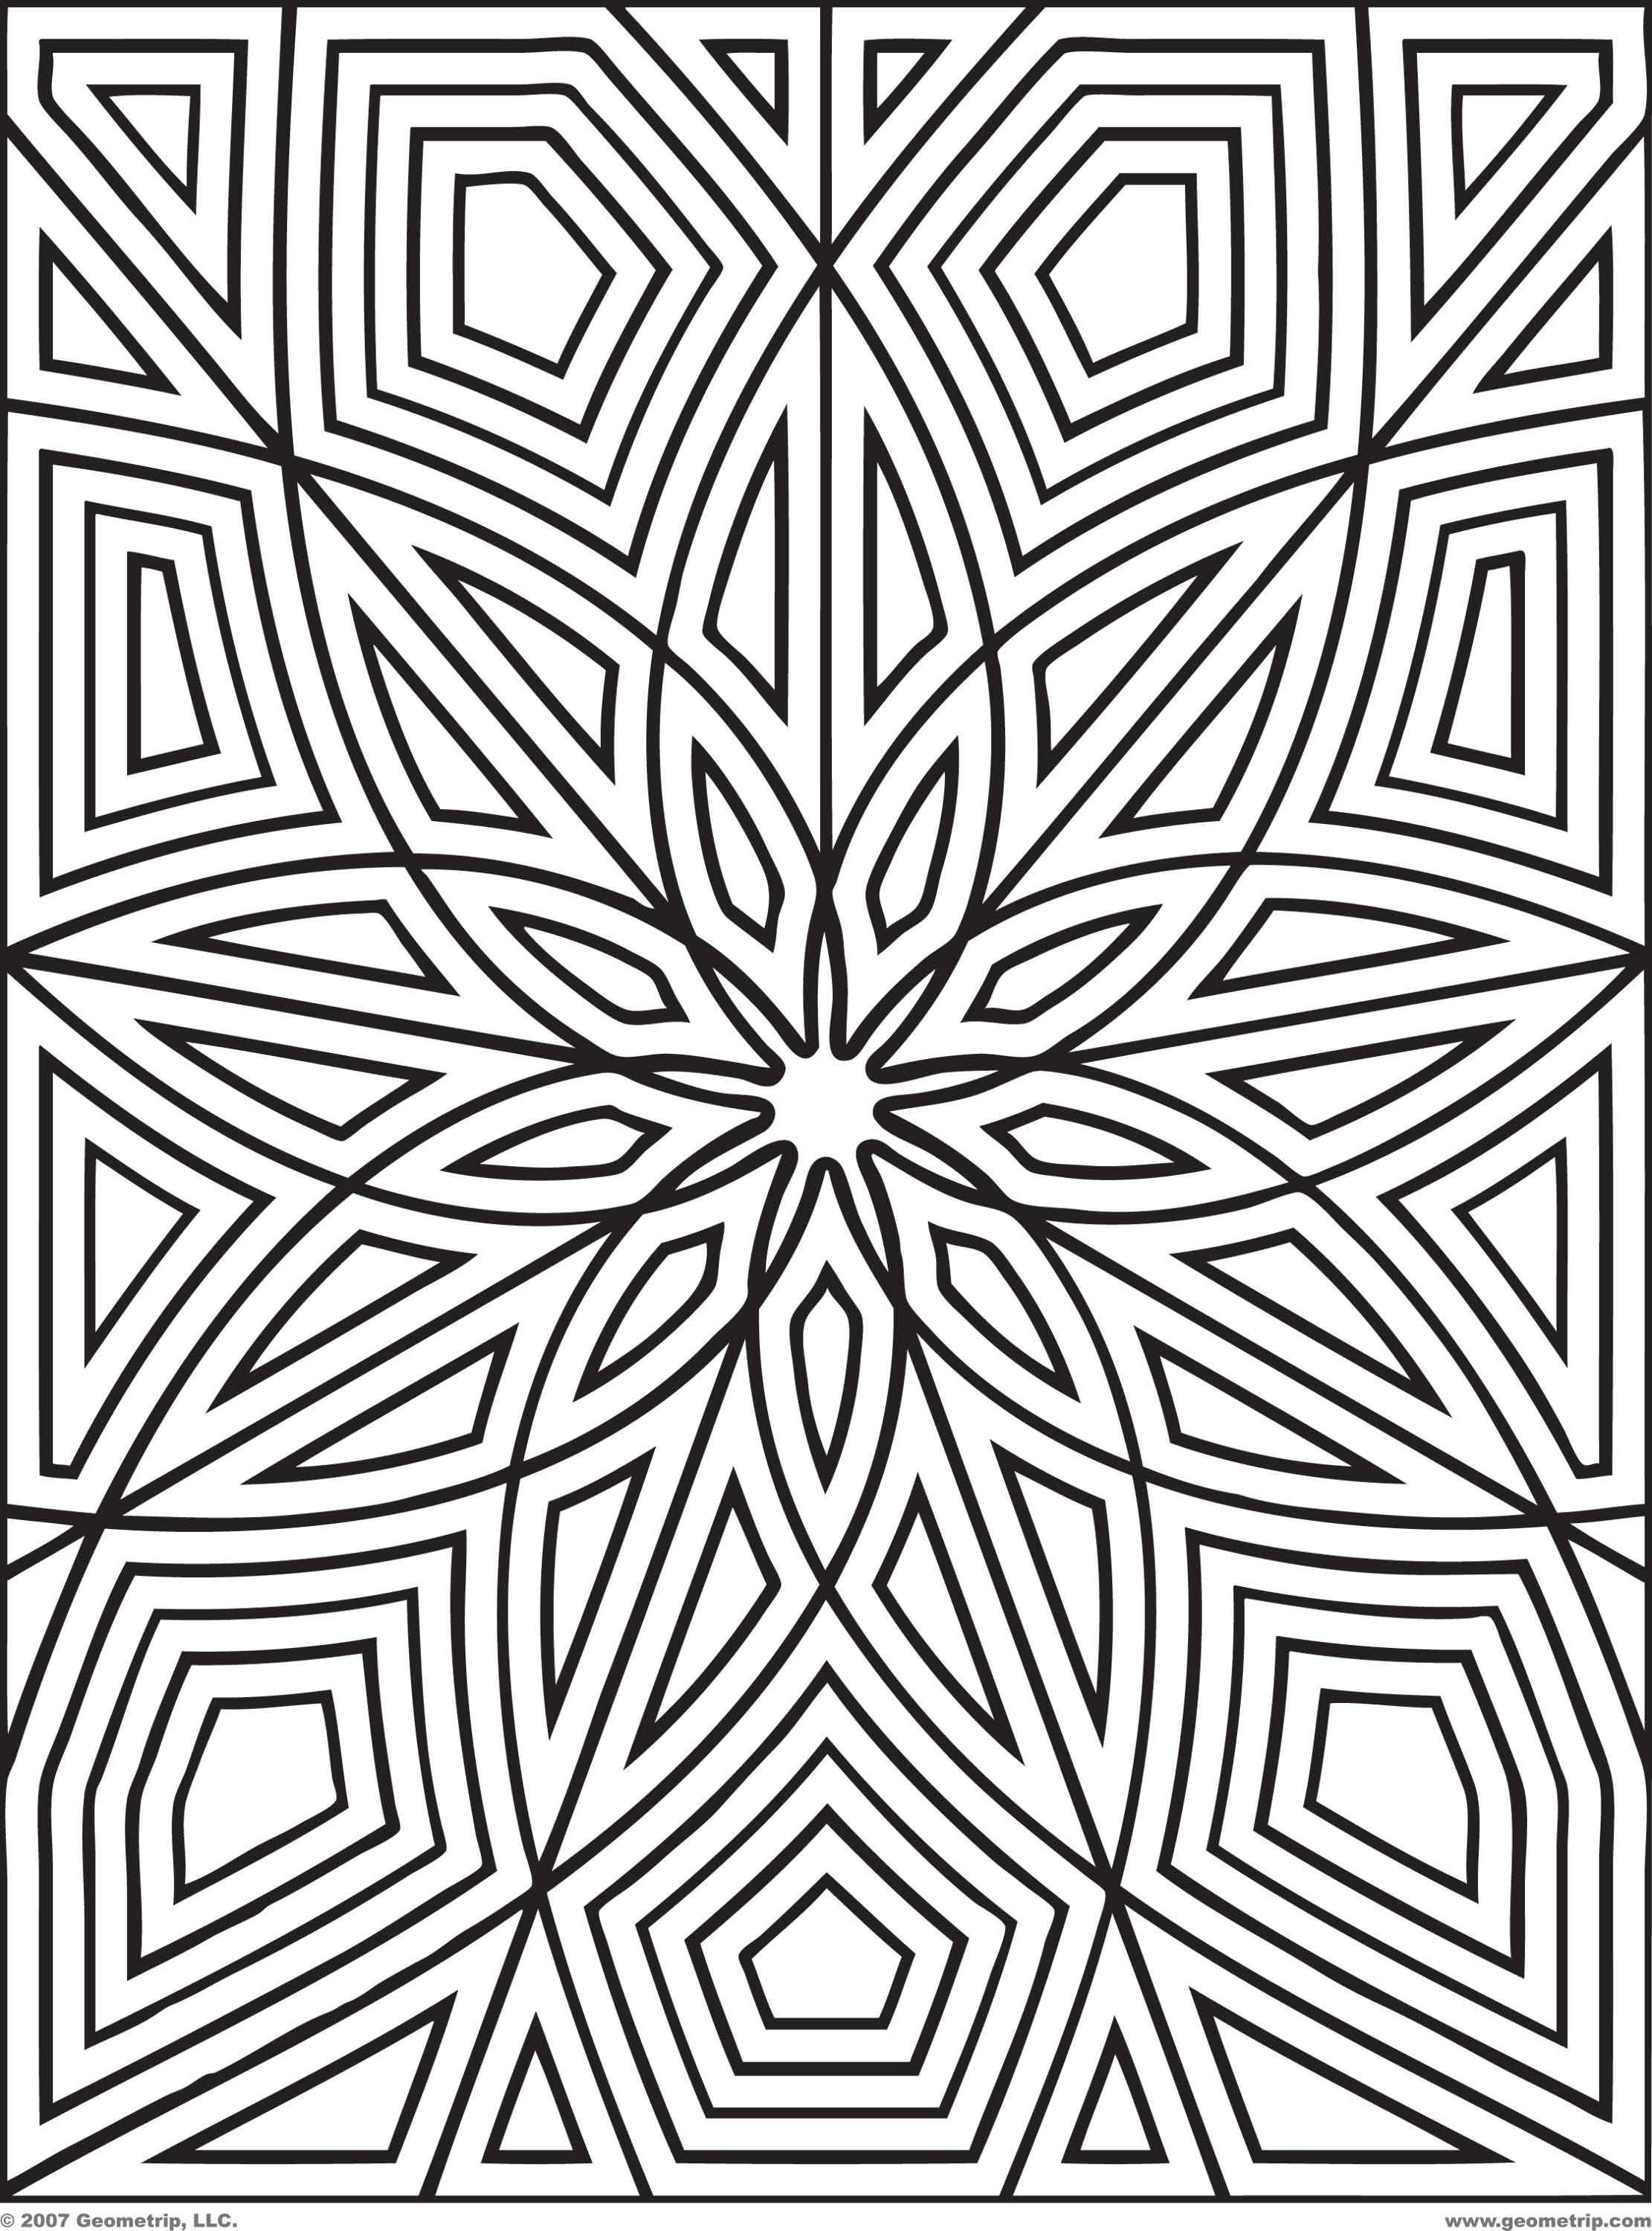 Uncategorized Free Coloring Pages Designs printable geometric patterns designs print get your free mandala coloring pages here